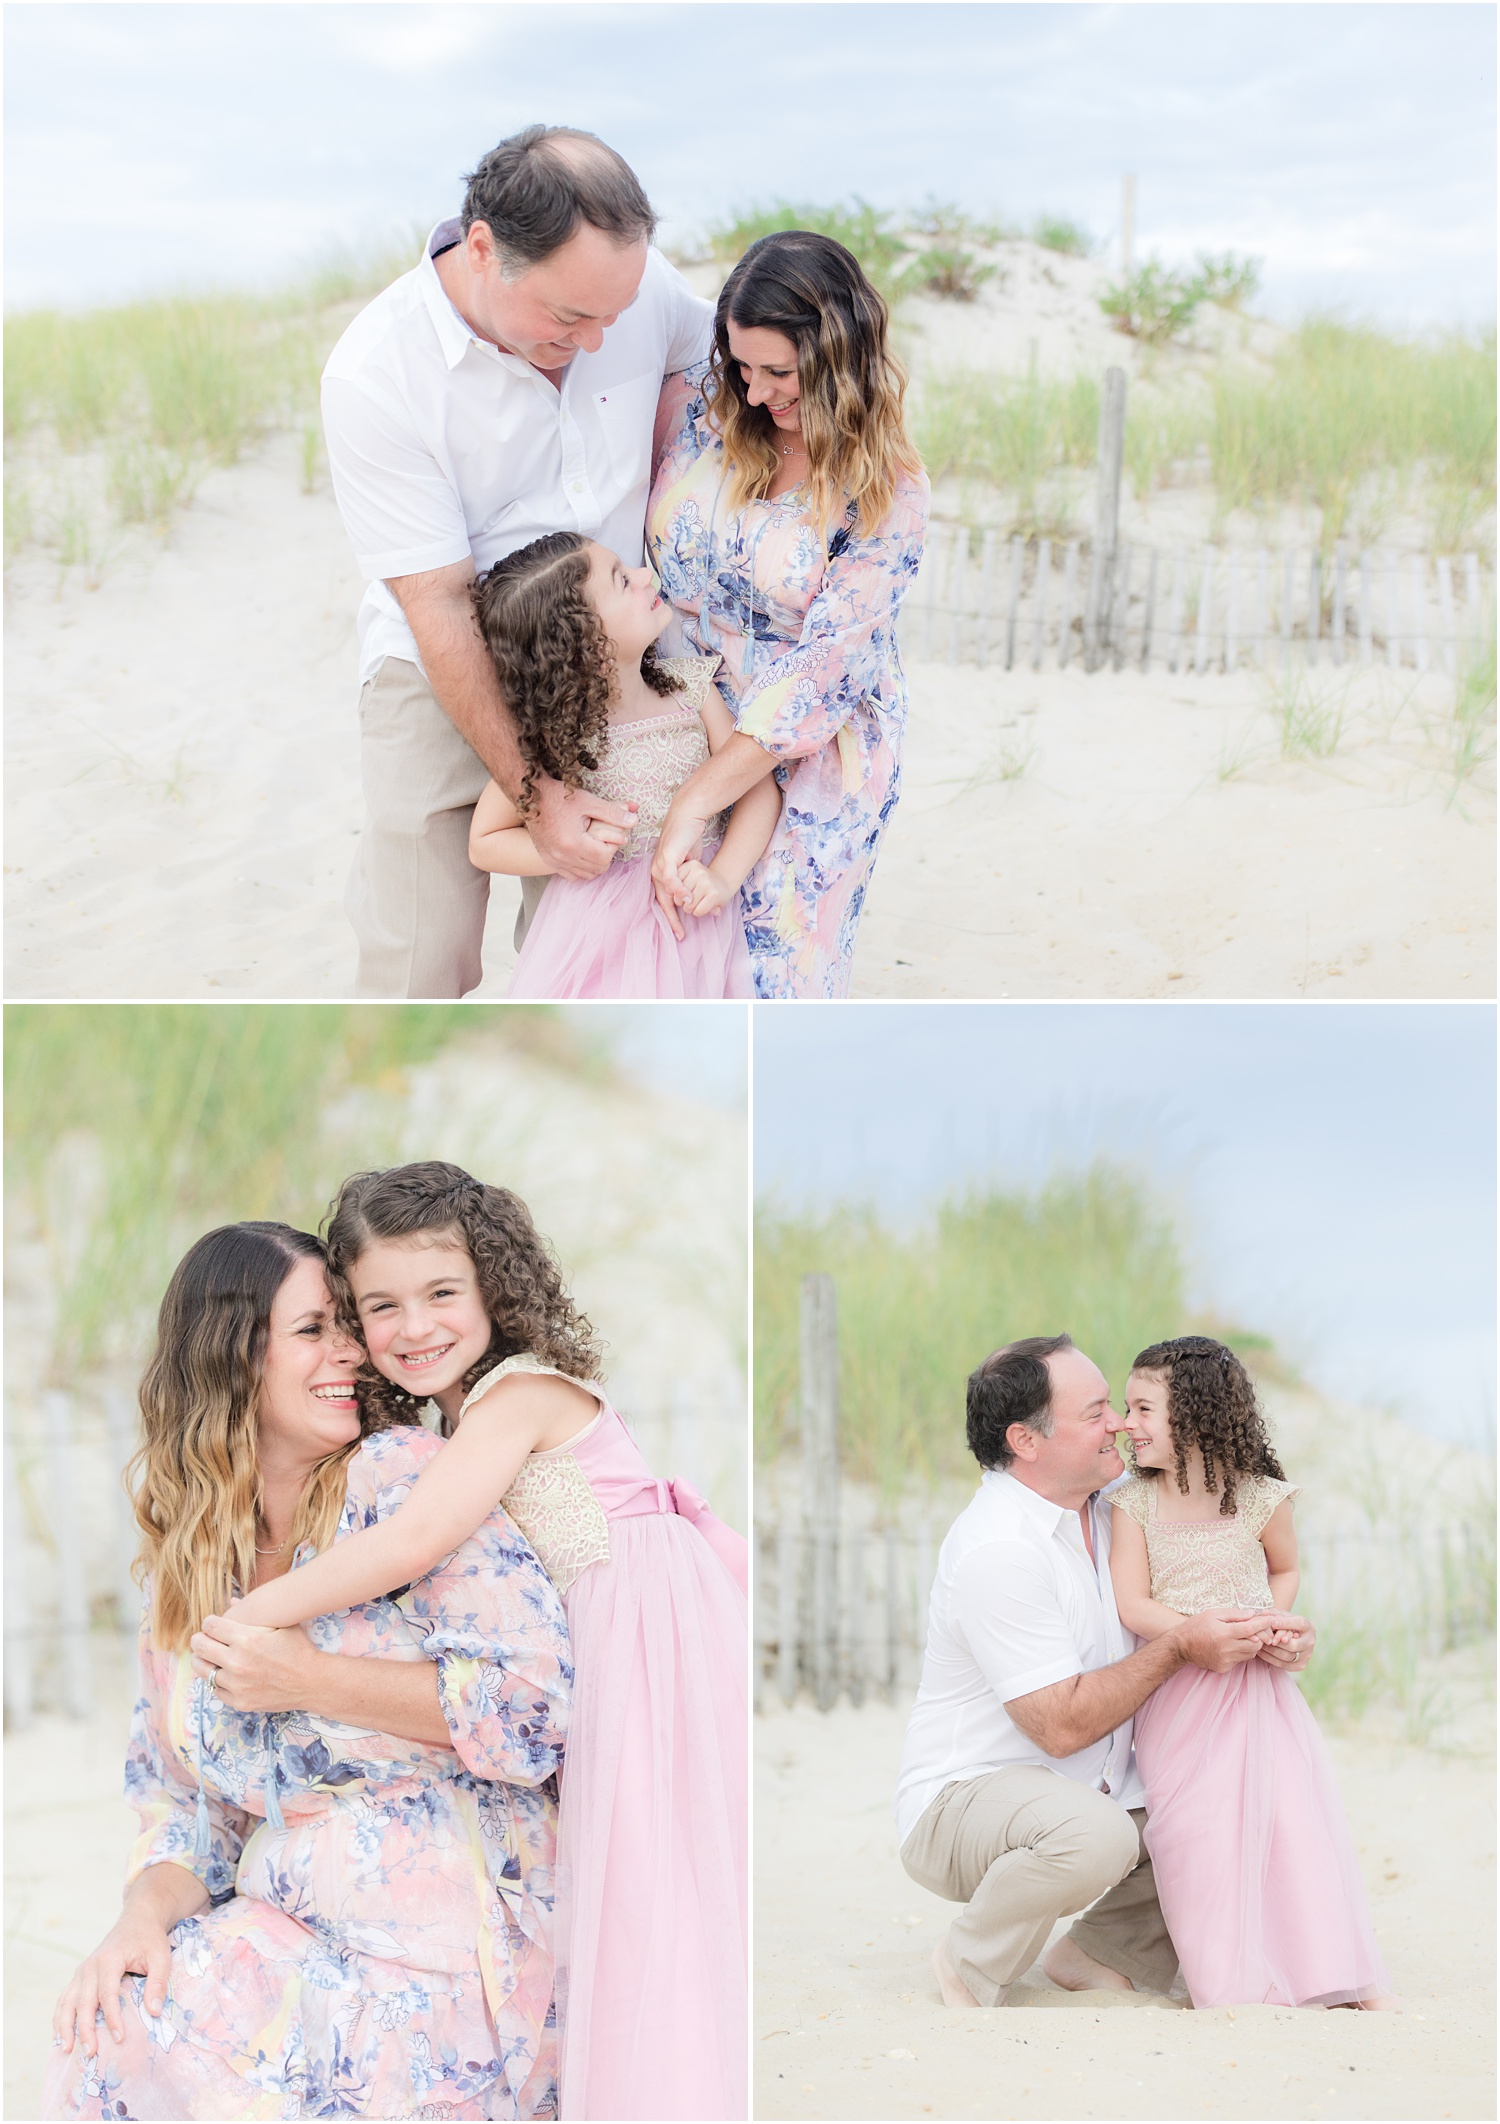 family and birthday photos on the beach in Lavallette, NJ.